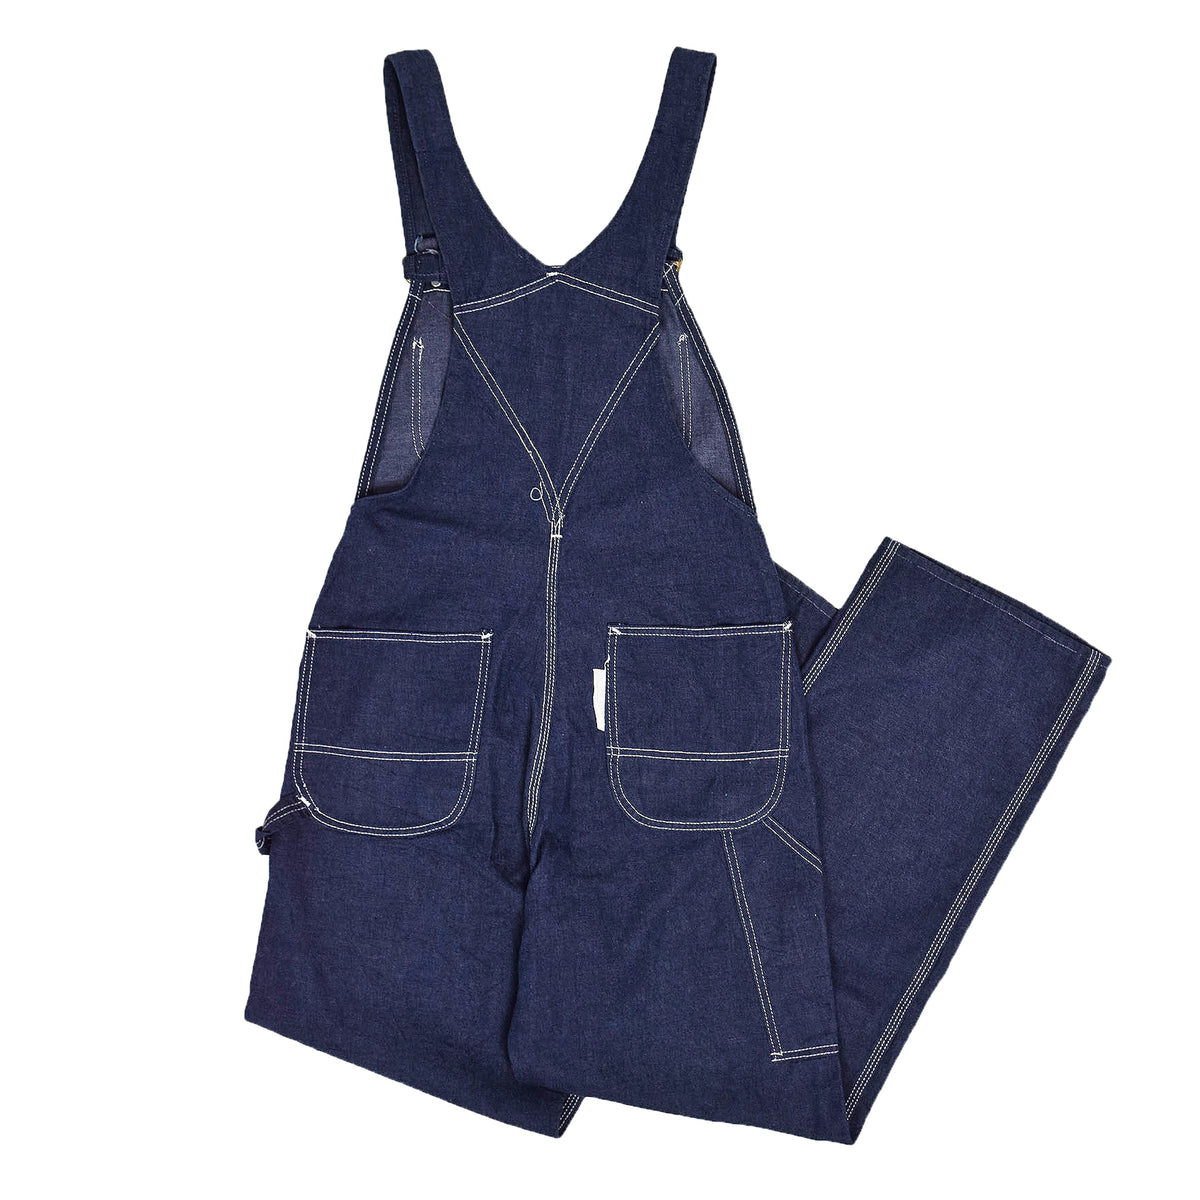 Vintage Sears Union Made USA Workwear Dungarees Blue Denim Overalls XS BACK